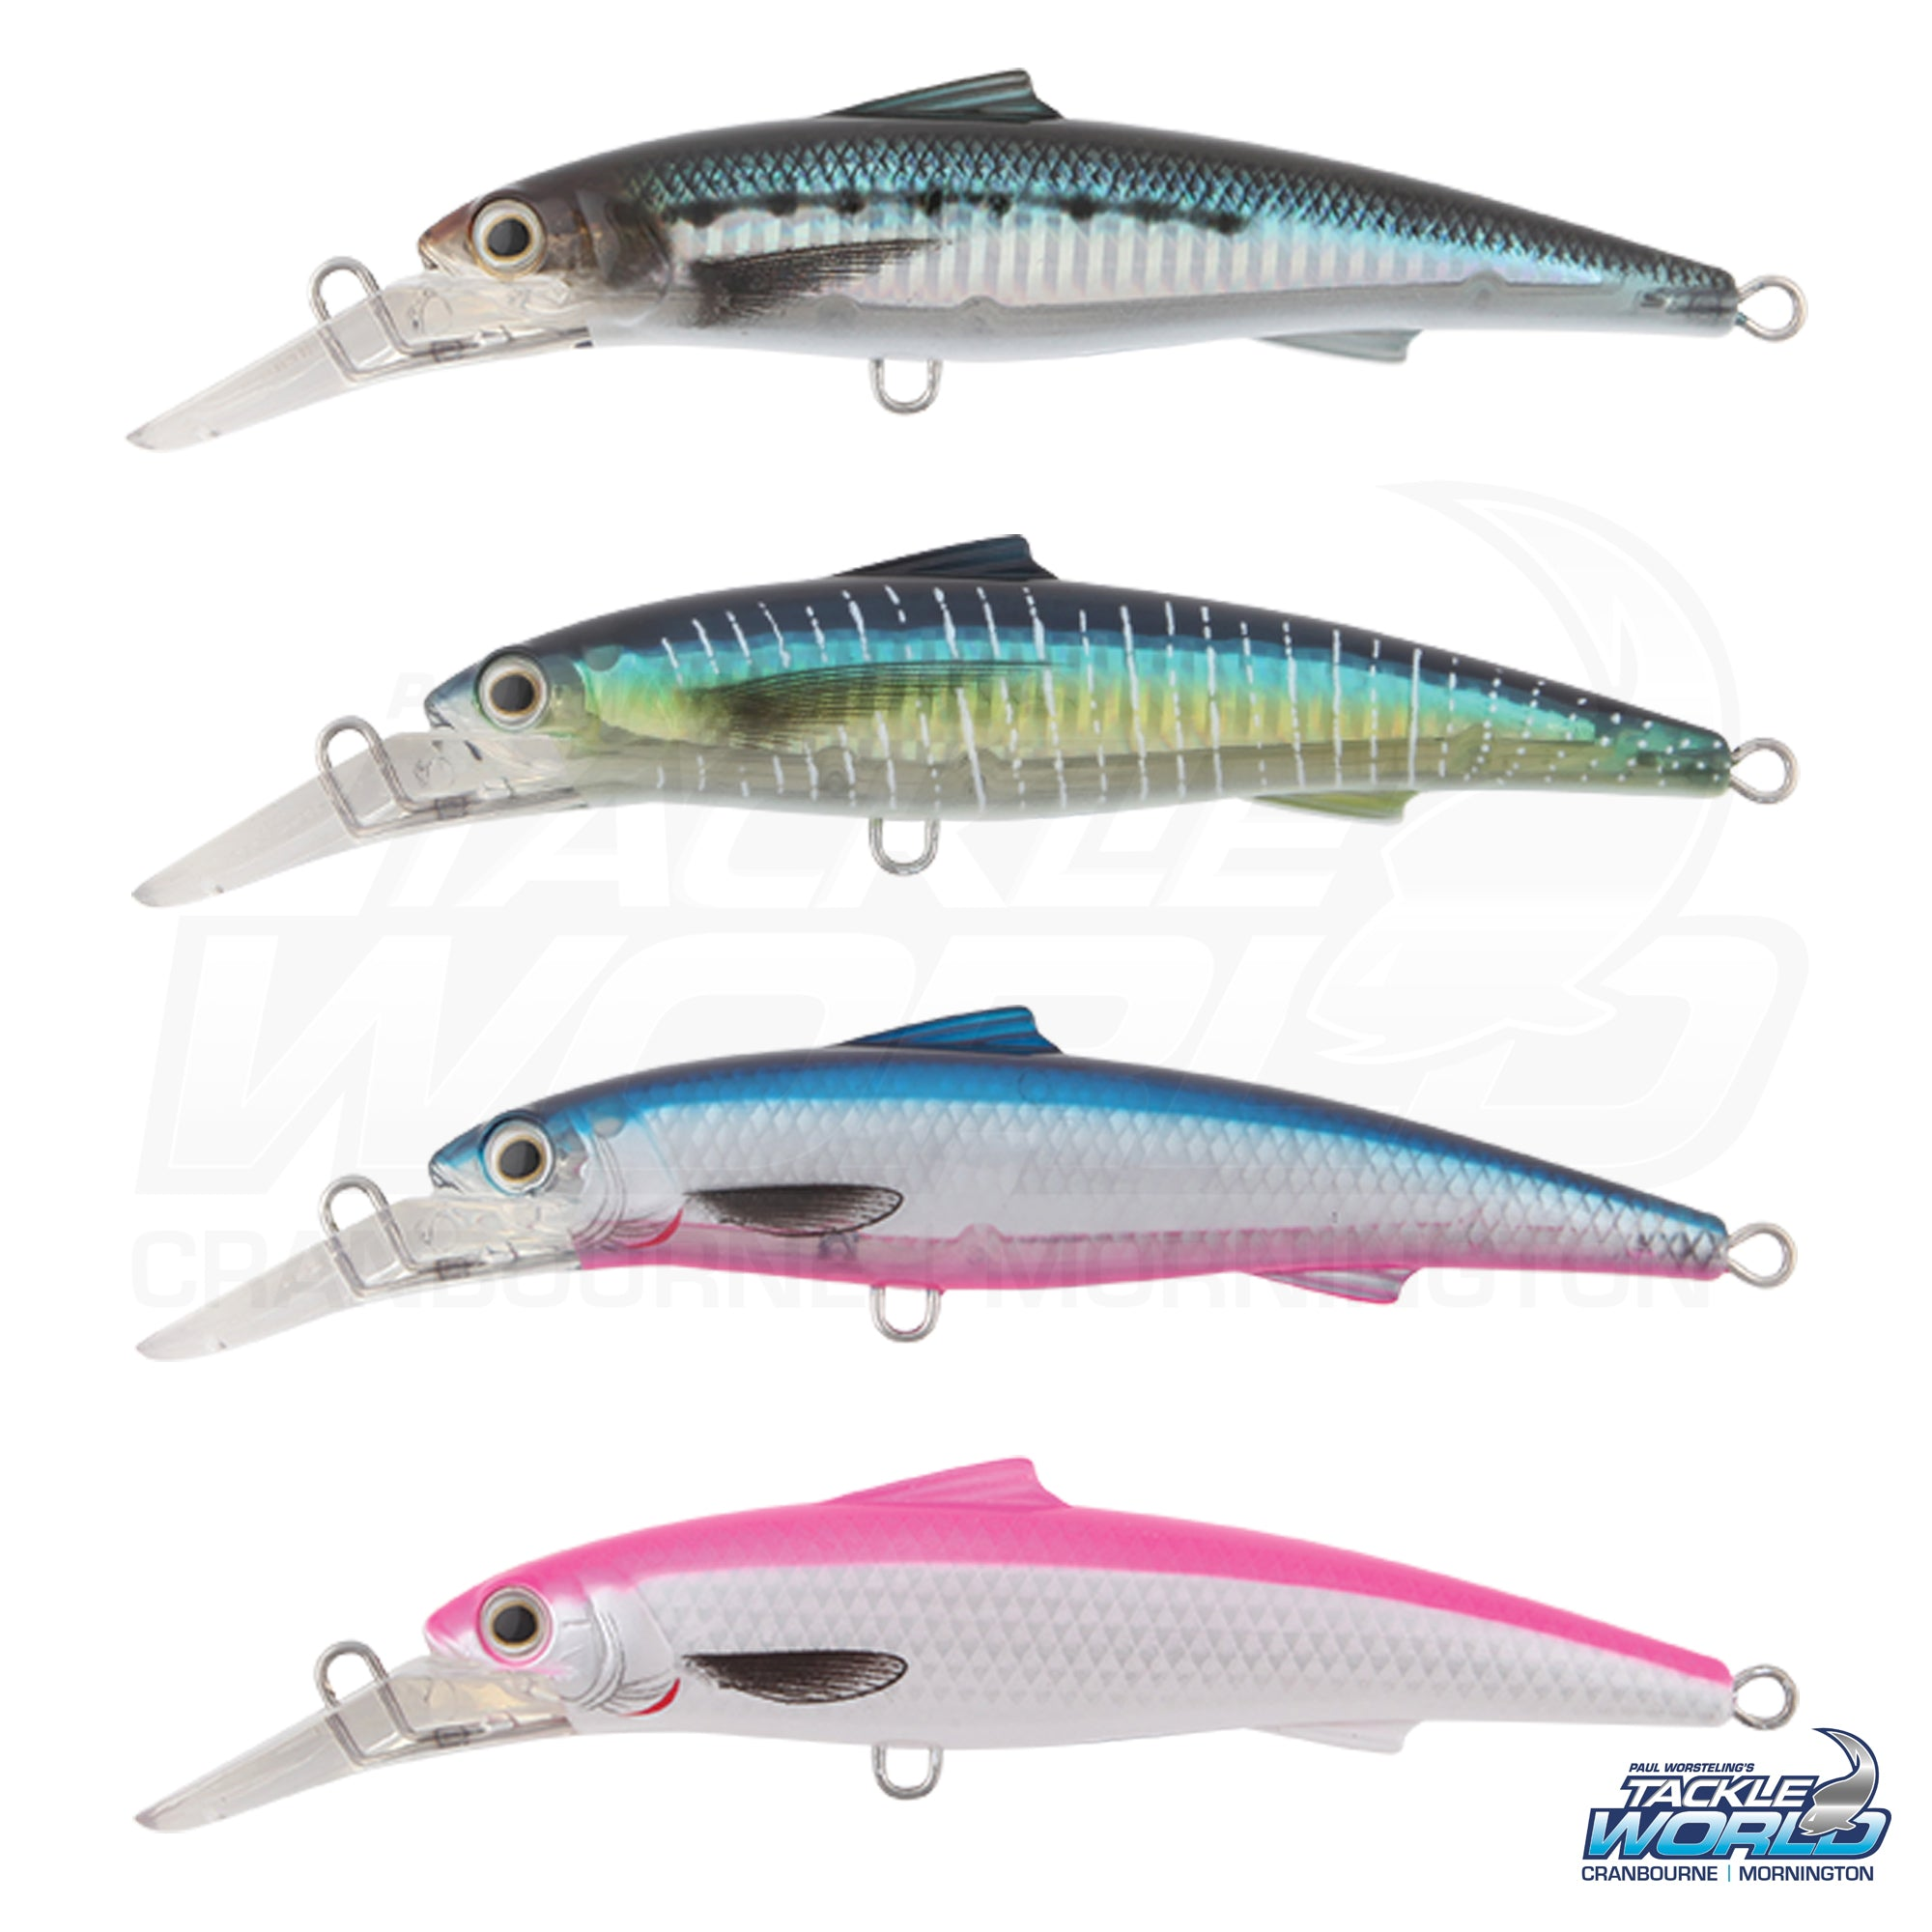 Samaki Pacemaker Trolling Lures for Tuna and Pelagic Species BRAND NEW